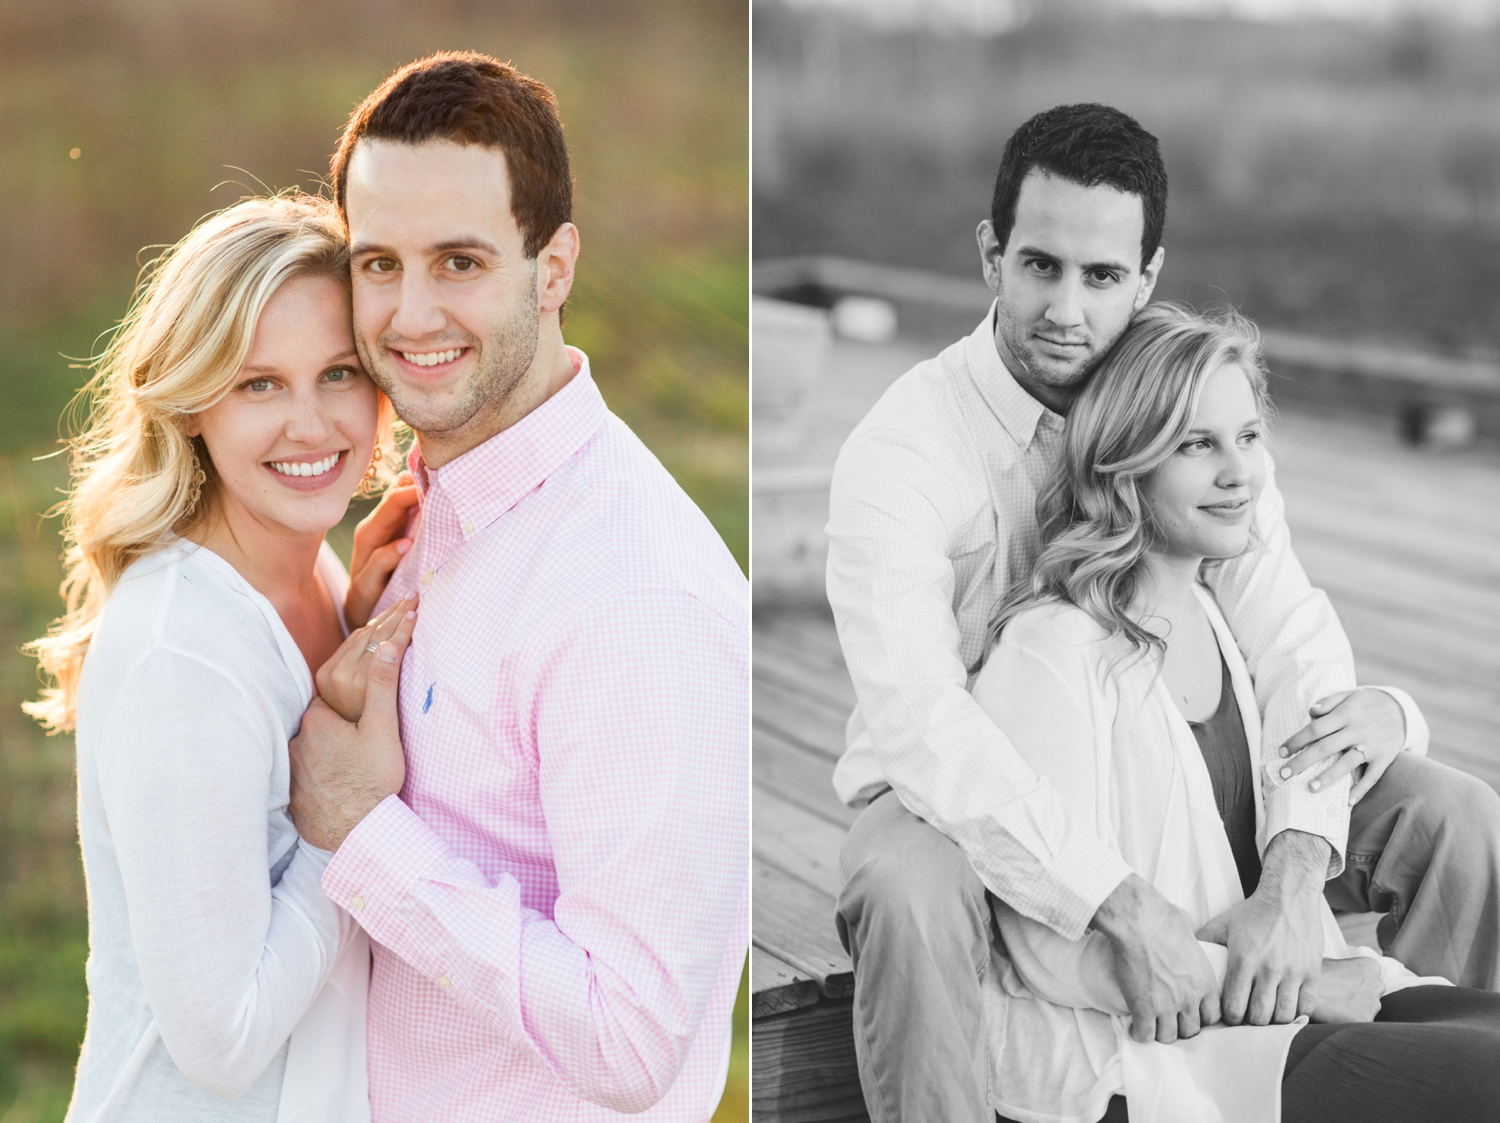 indianapolis_wedding_photographer_golden_hour_engagement_chloe_luka_photography_6143.jpg